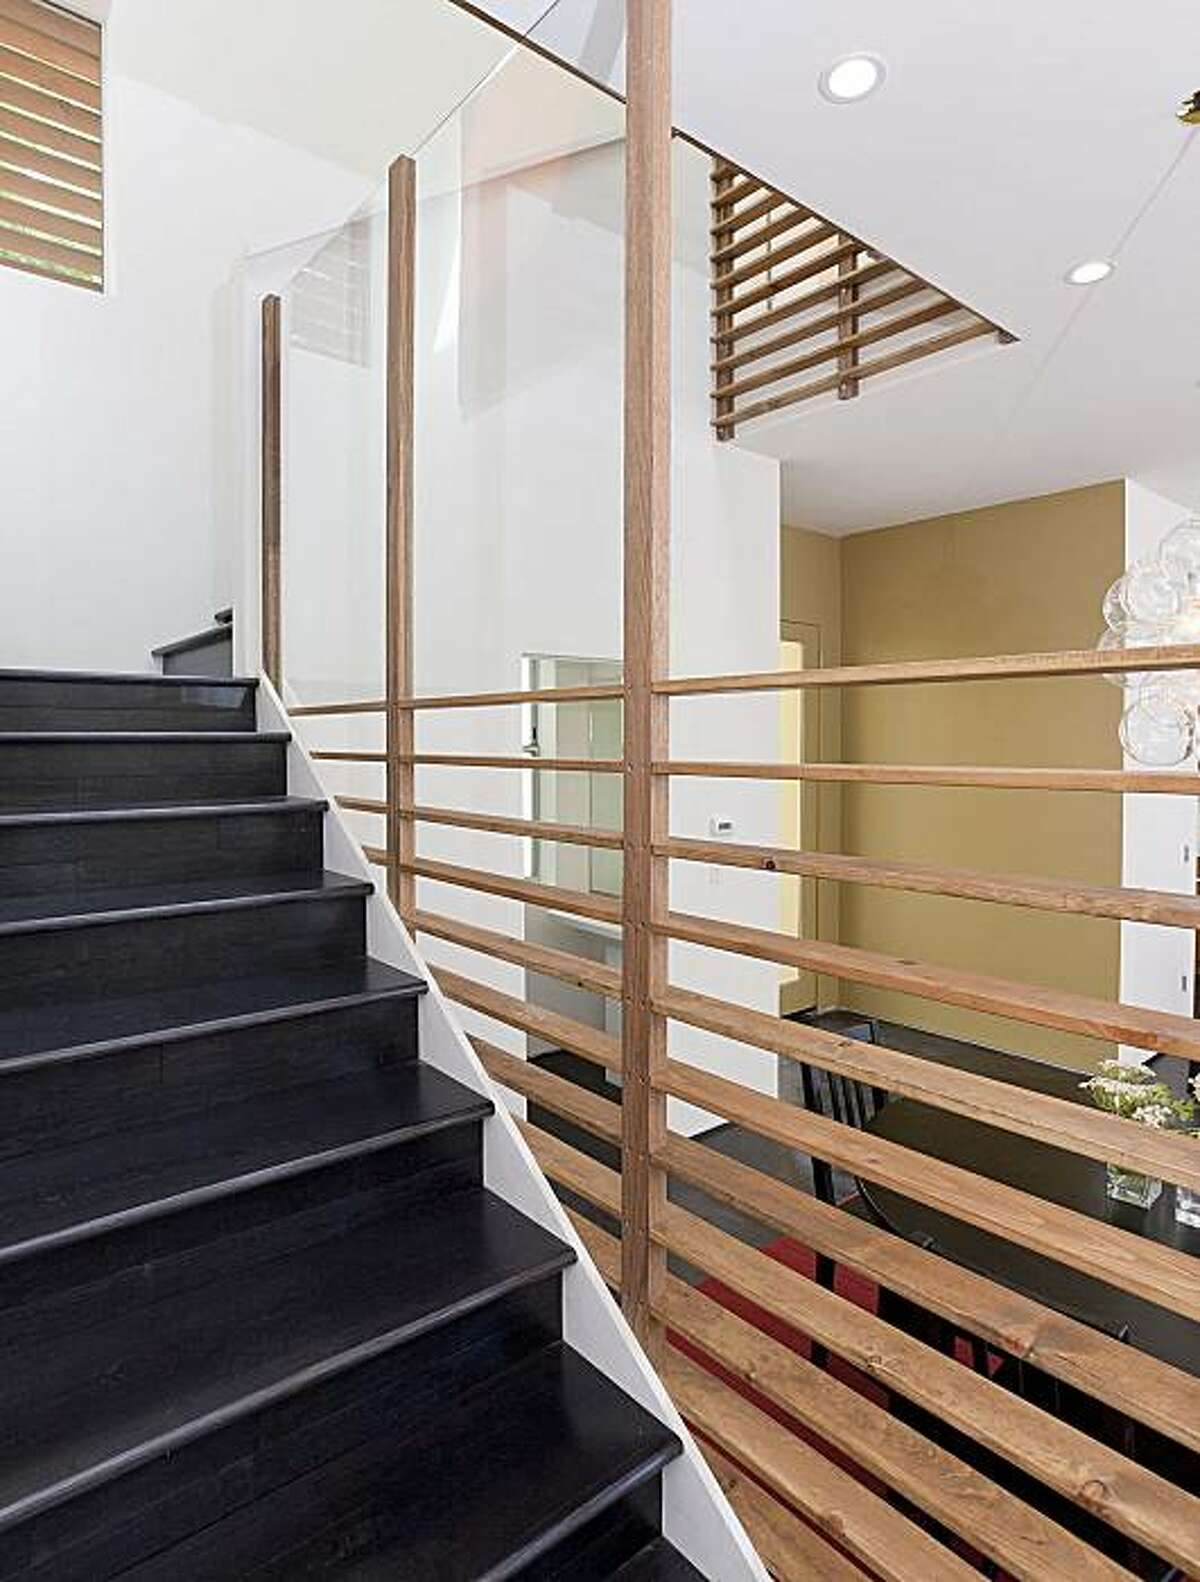 The staircase at 1089 55th Street in Oakland. The contemporary, 1,500-square-foot property includes two levels, with the upper floor housing the bedrooms. The bottom level is dedicated to the main living space.